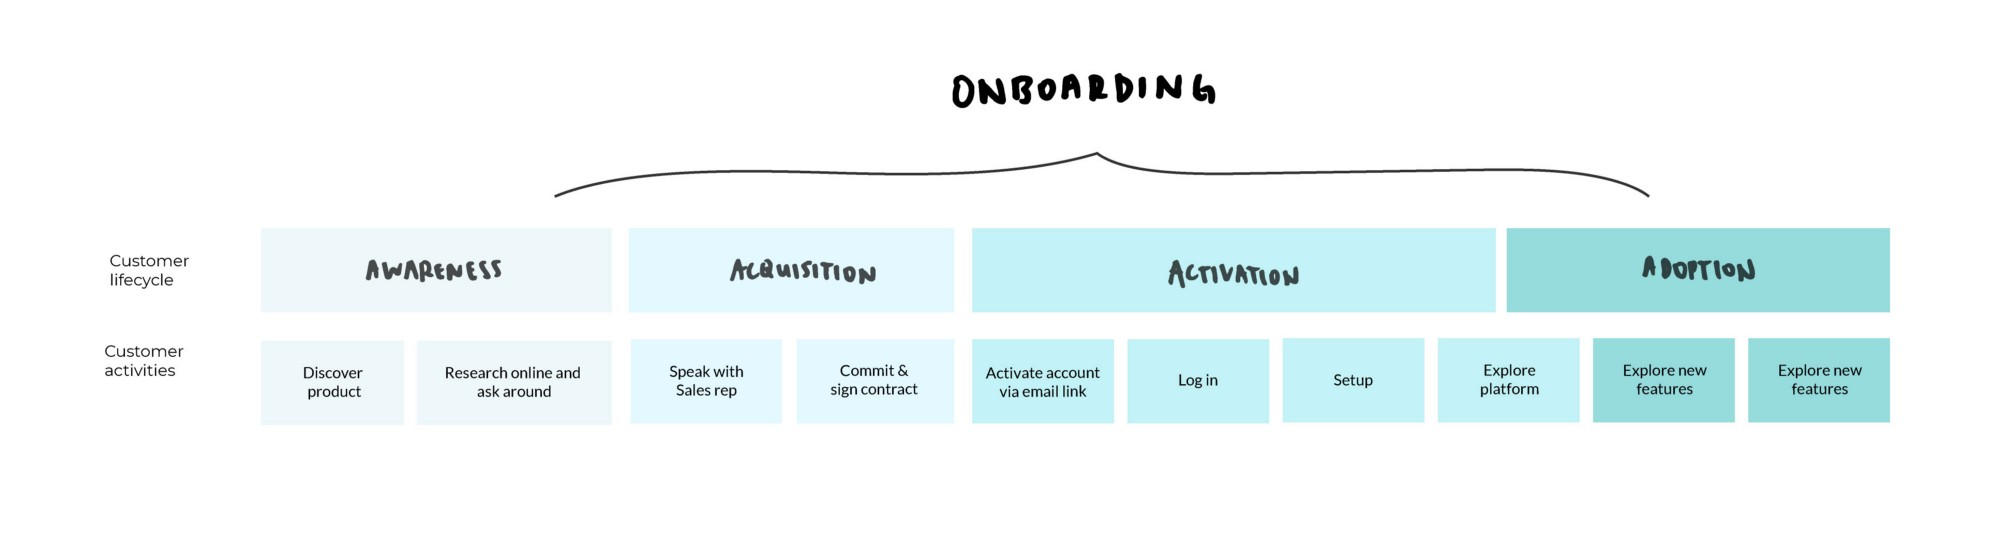 Where onboarding fits in the customer lifecycle and the key activities involved in each stage